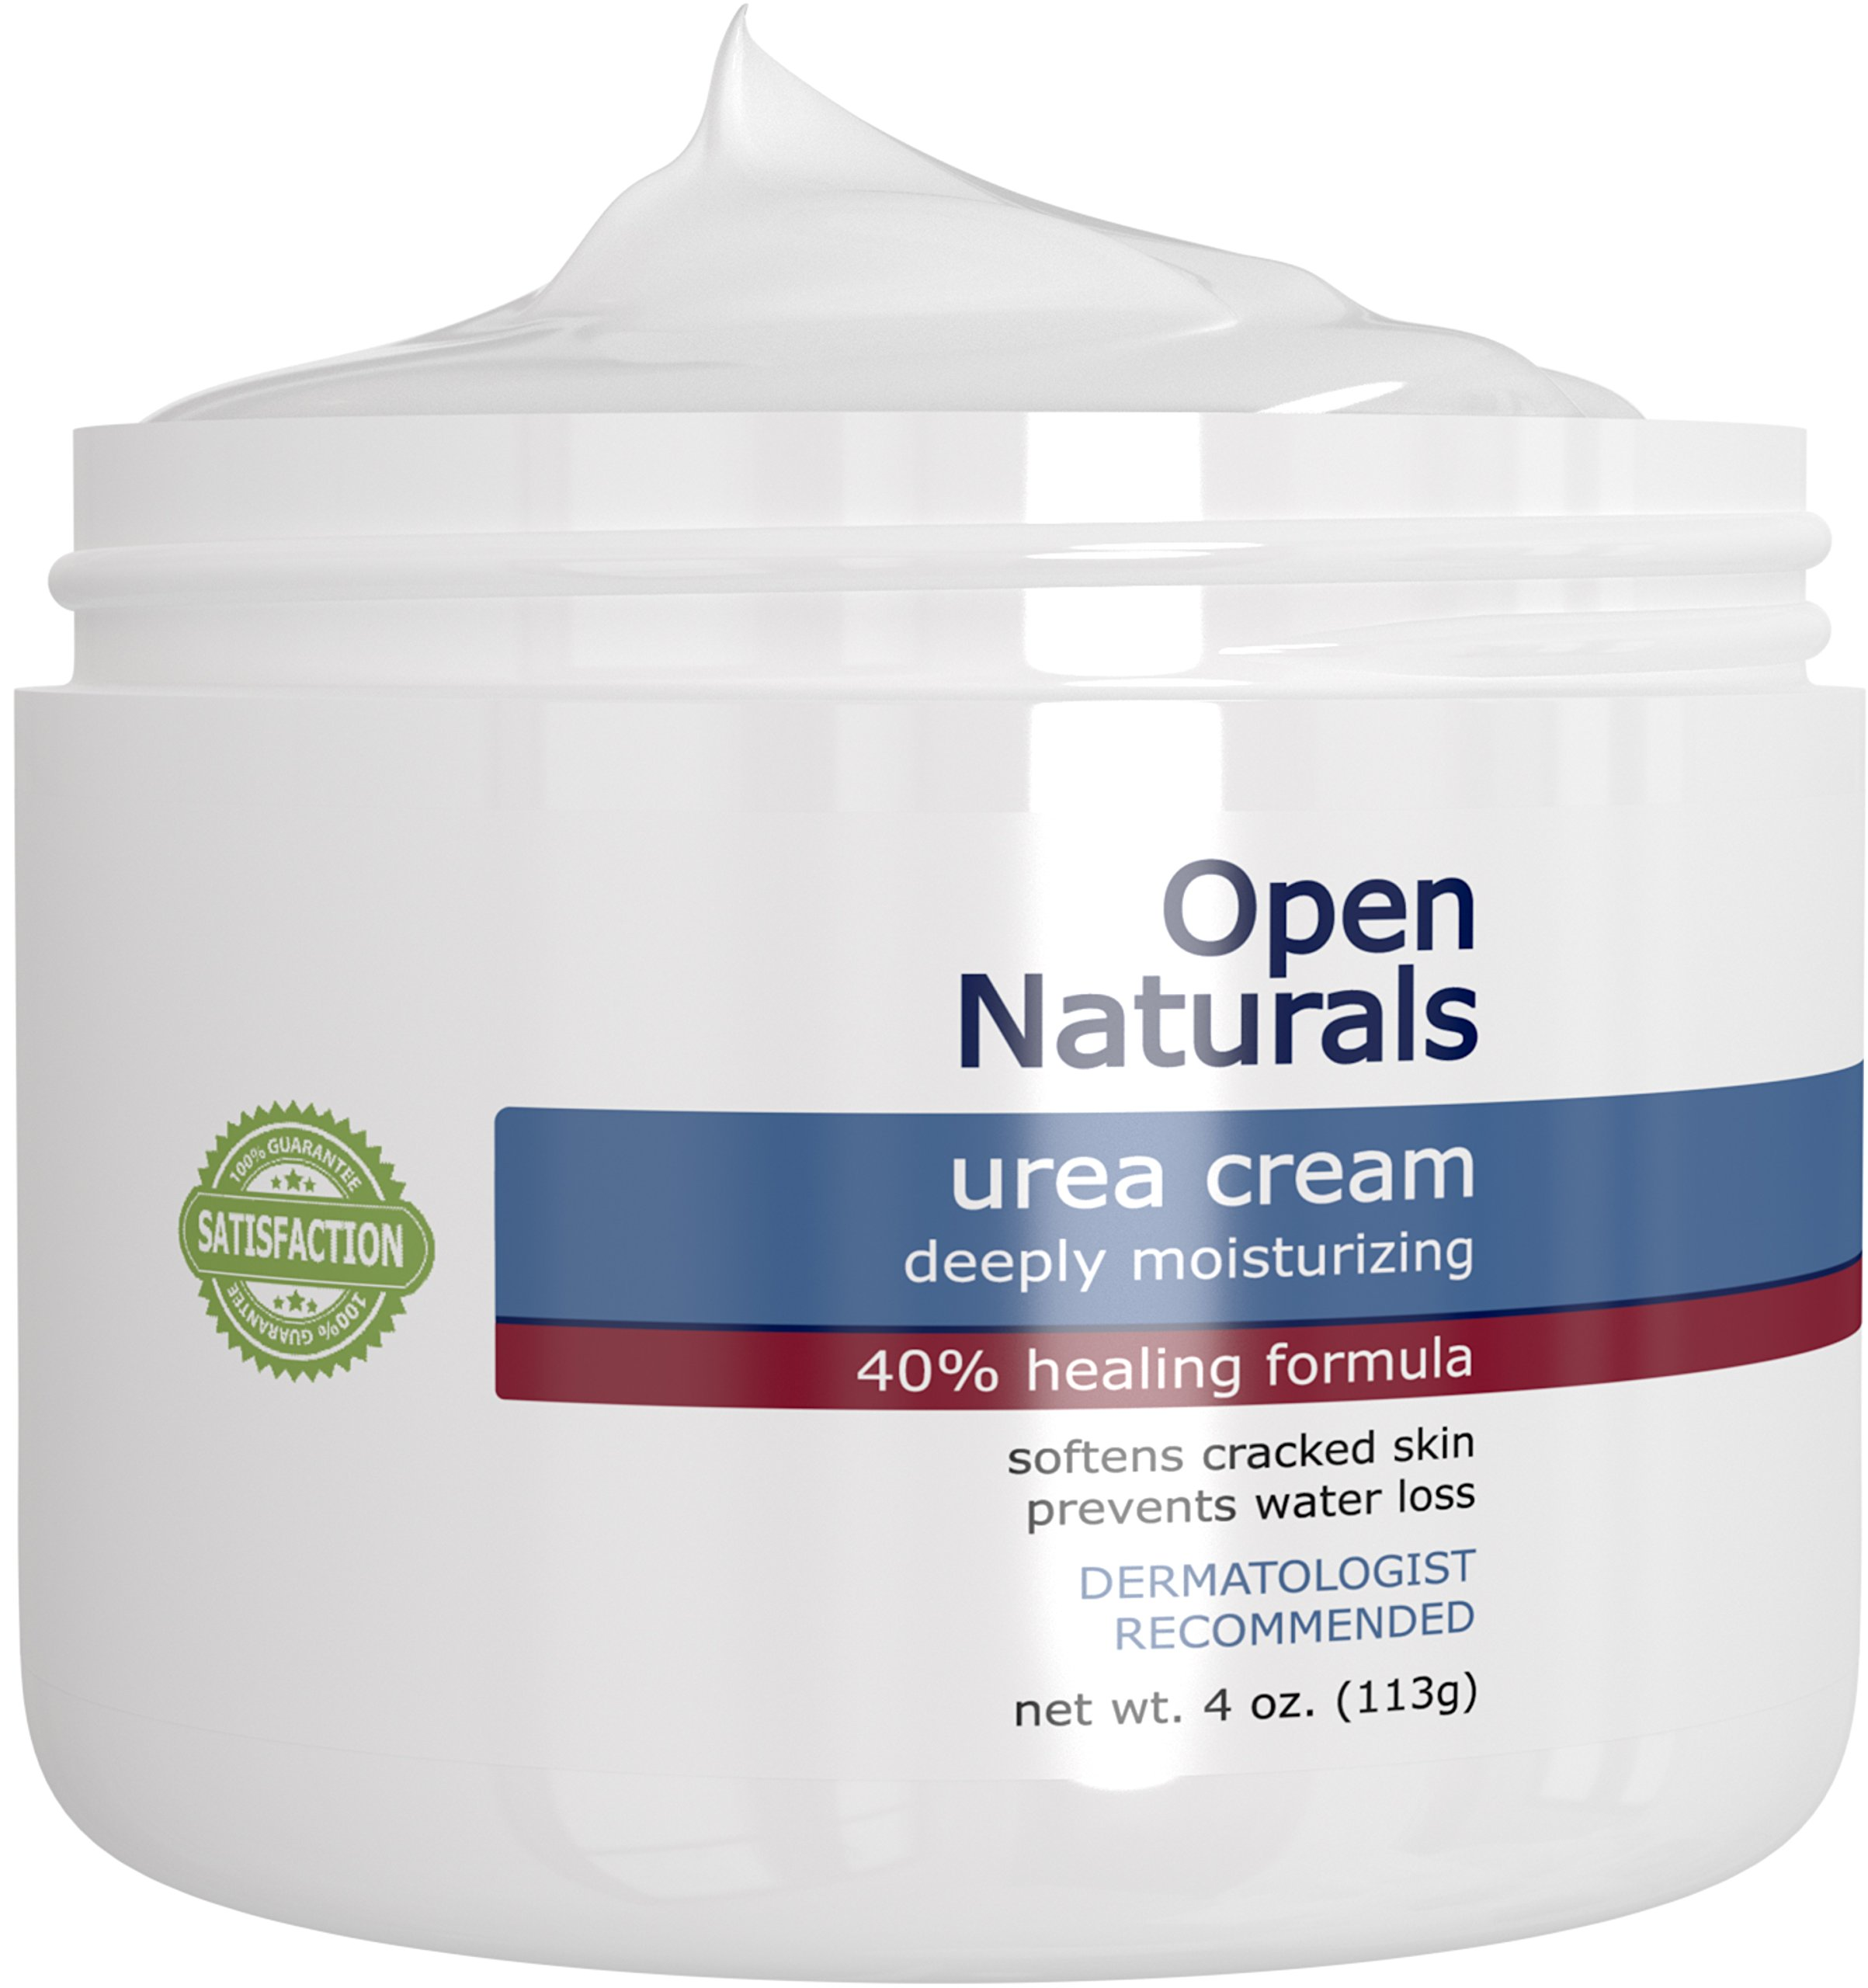 Open Naturals Urea 40% Foot Cream - 4 oz - Premium Callus Remover - Moisturizes and Rehydrates Thick, Cracked, Rough, Dead and Dry Skin - Elbow, Feet - Your Satisfaction or 100% Money Back Guarantee by Open Naturals (Image #4)